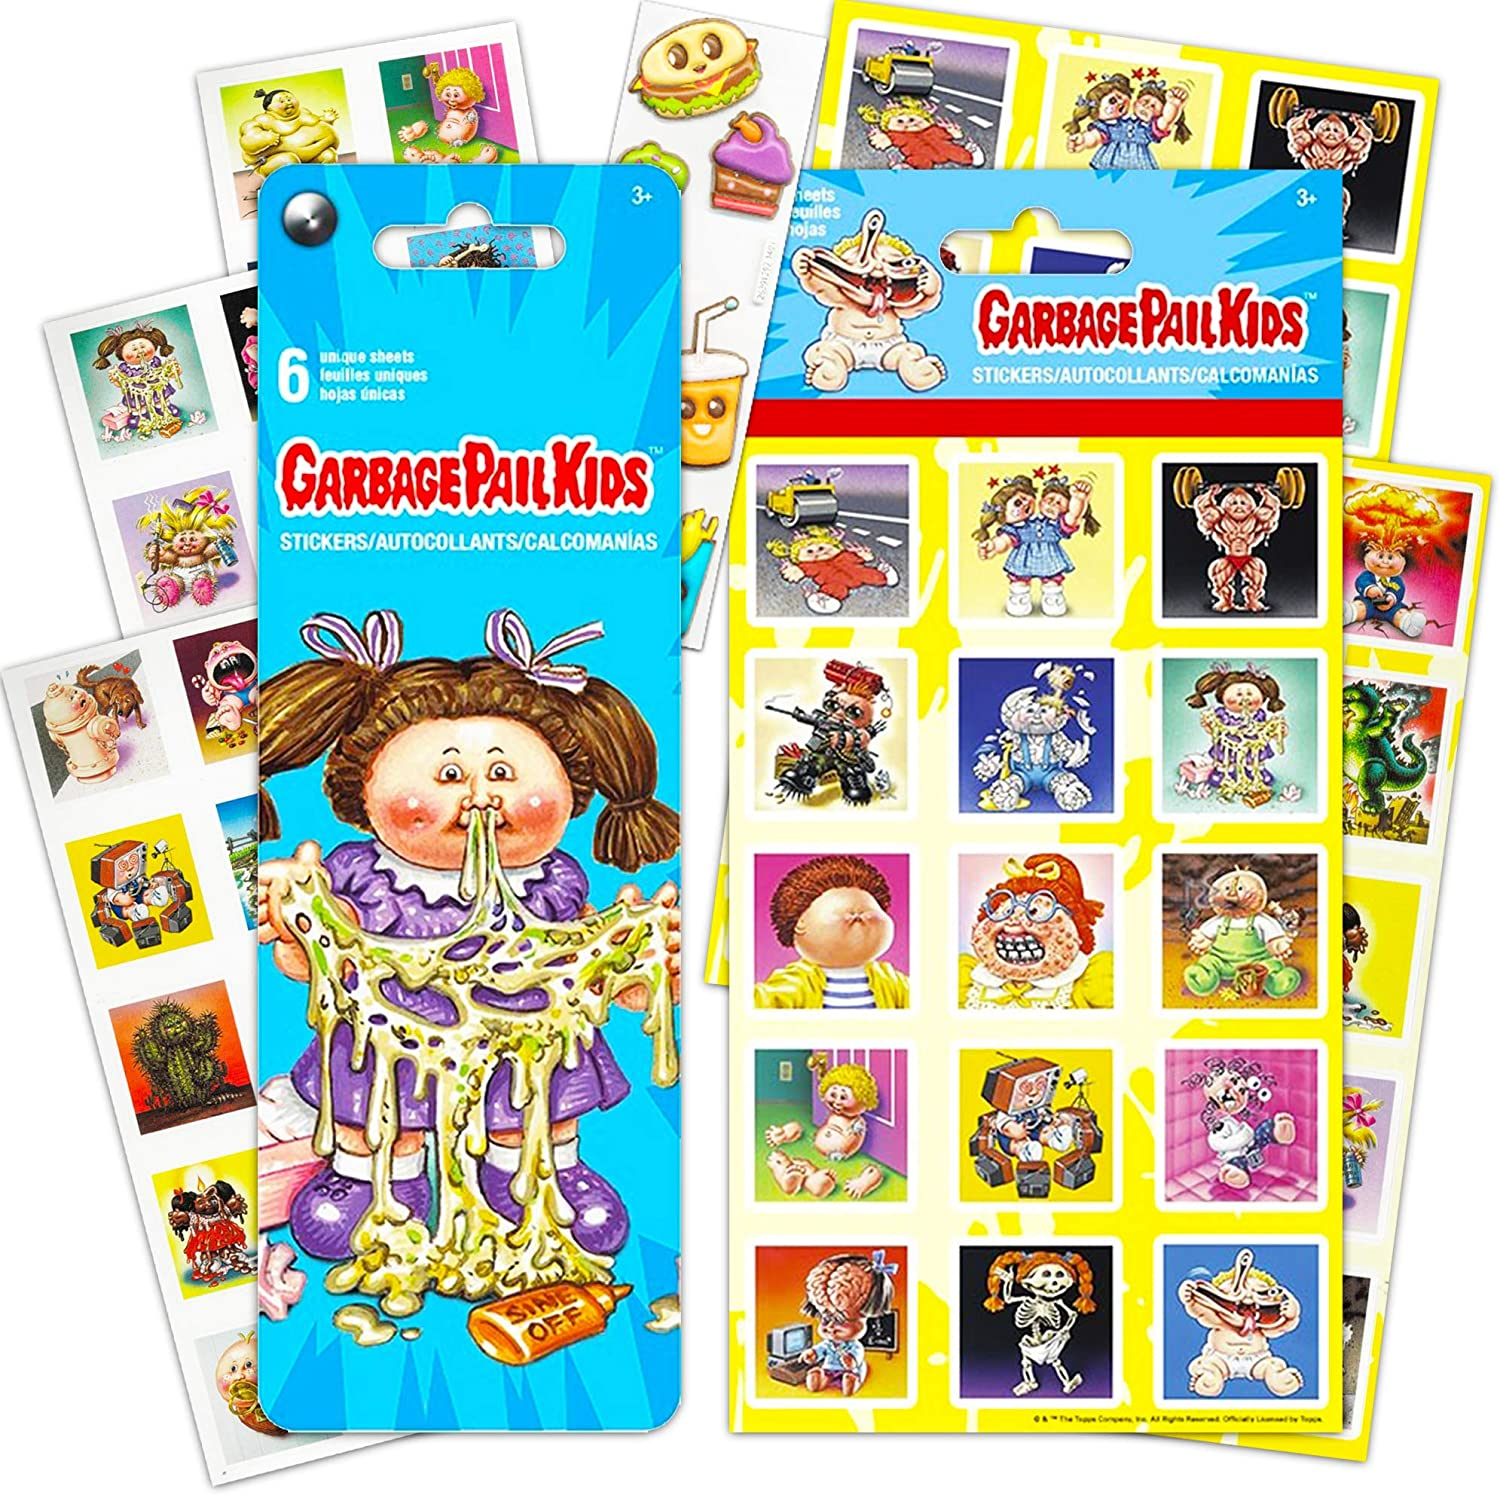 Garbage Pail Kids Party Favors Sticker Set -- Bundle Includes 10 Sheets of Garbage Pail Kids Stickers, Over 150 Stickers Total, with Bonus Food Stickers (Garbage Pail Kids Stickers and Party Favors)